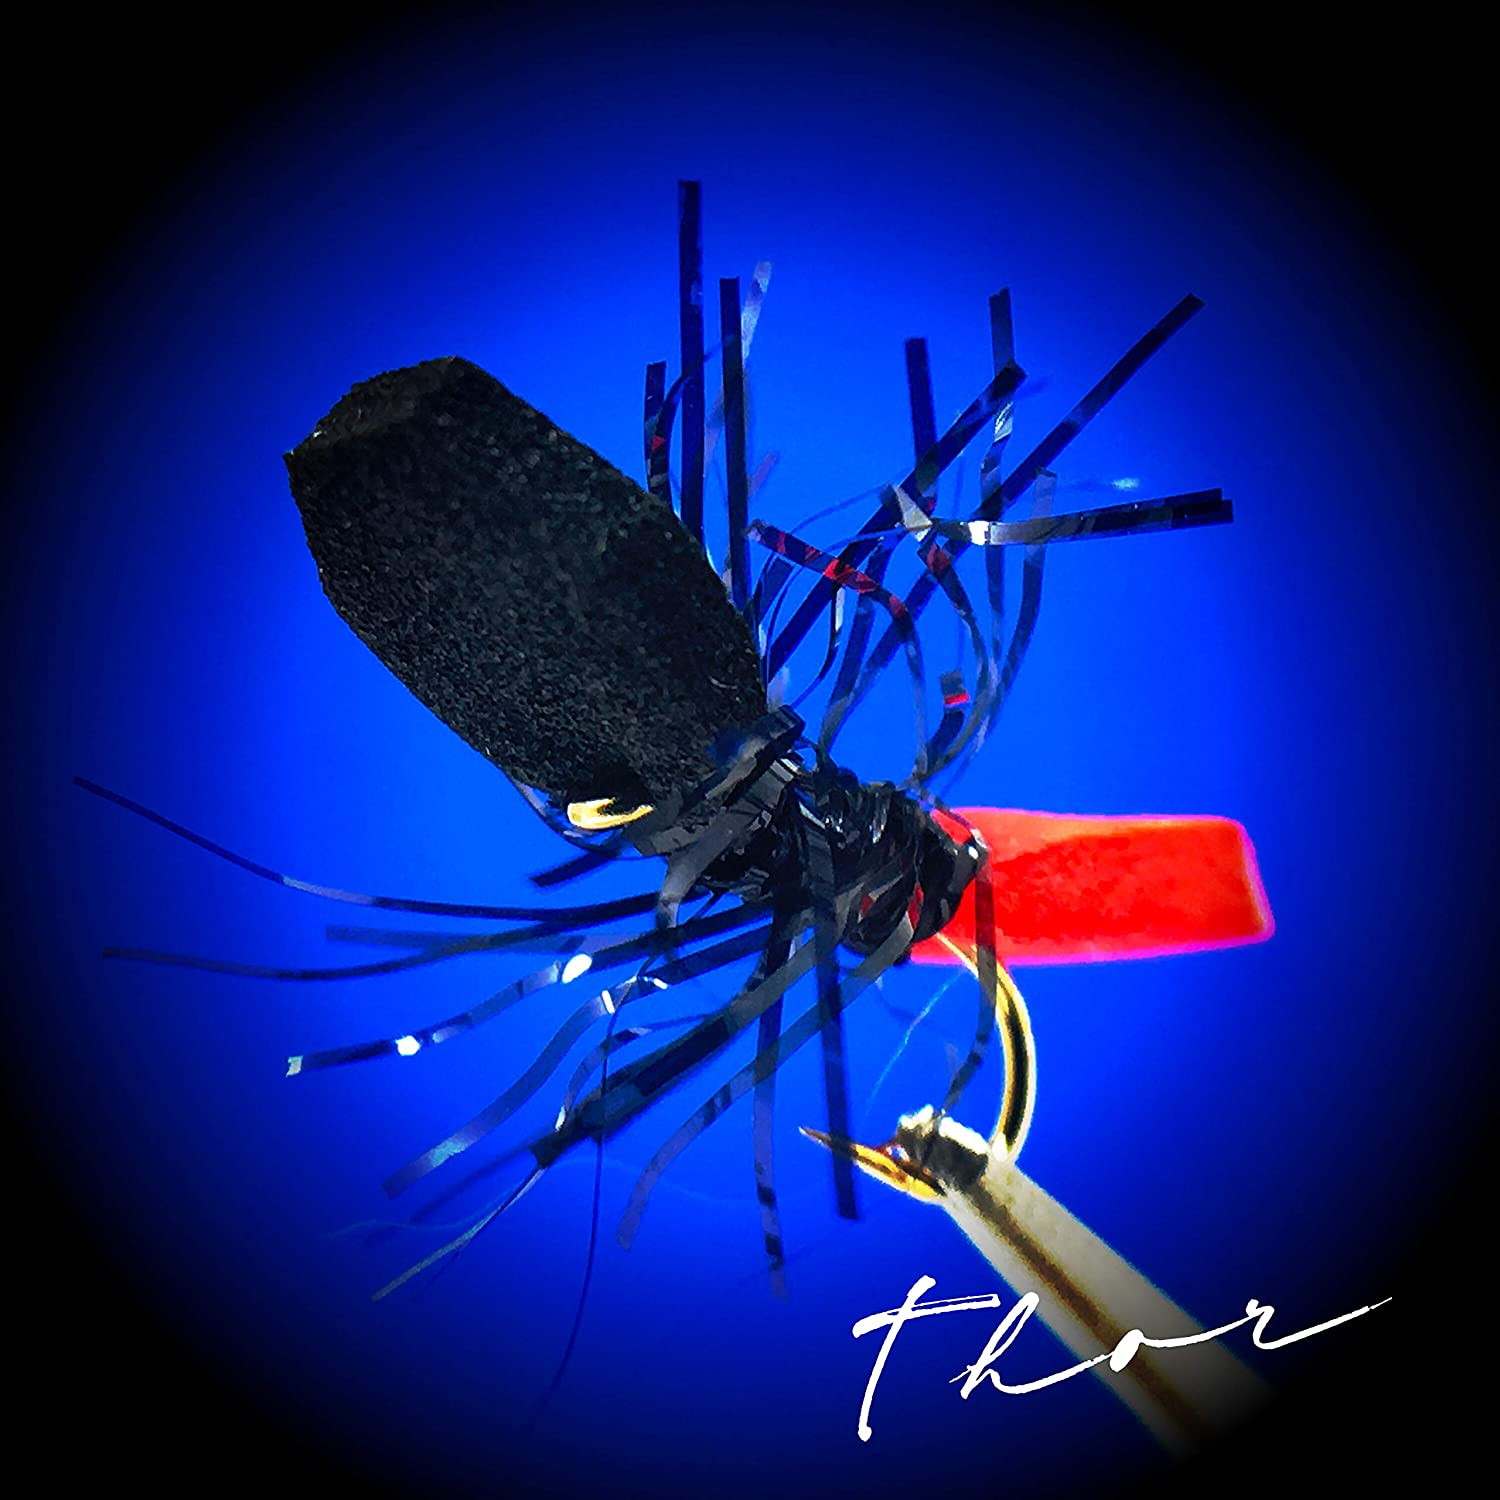 Thor Outdoor Frantic Ant Fly Fishing Set Hook Sizes 14 Panfish Trout 3 Pc Topwater Foam Flies Assortment for Bass